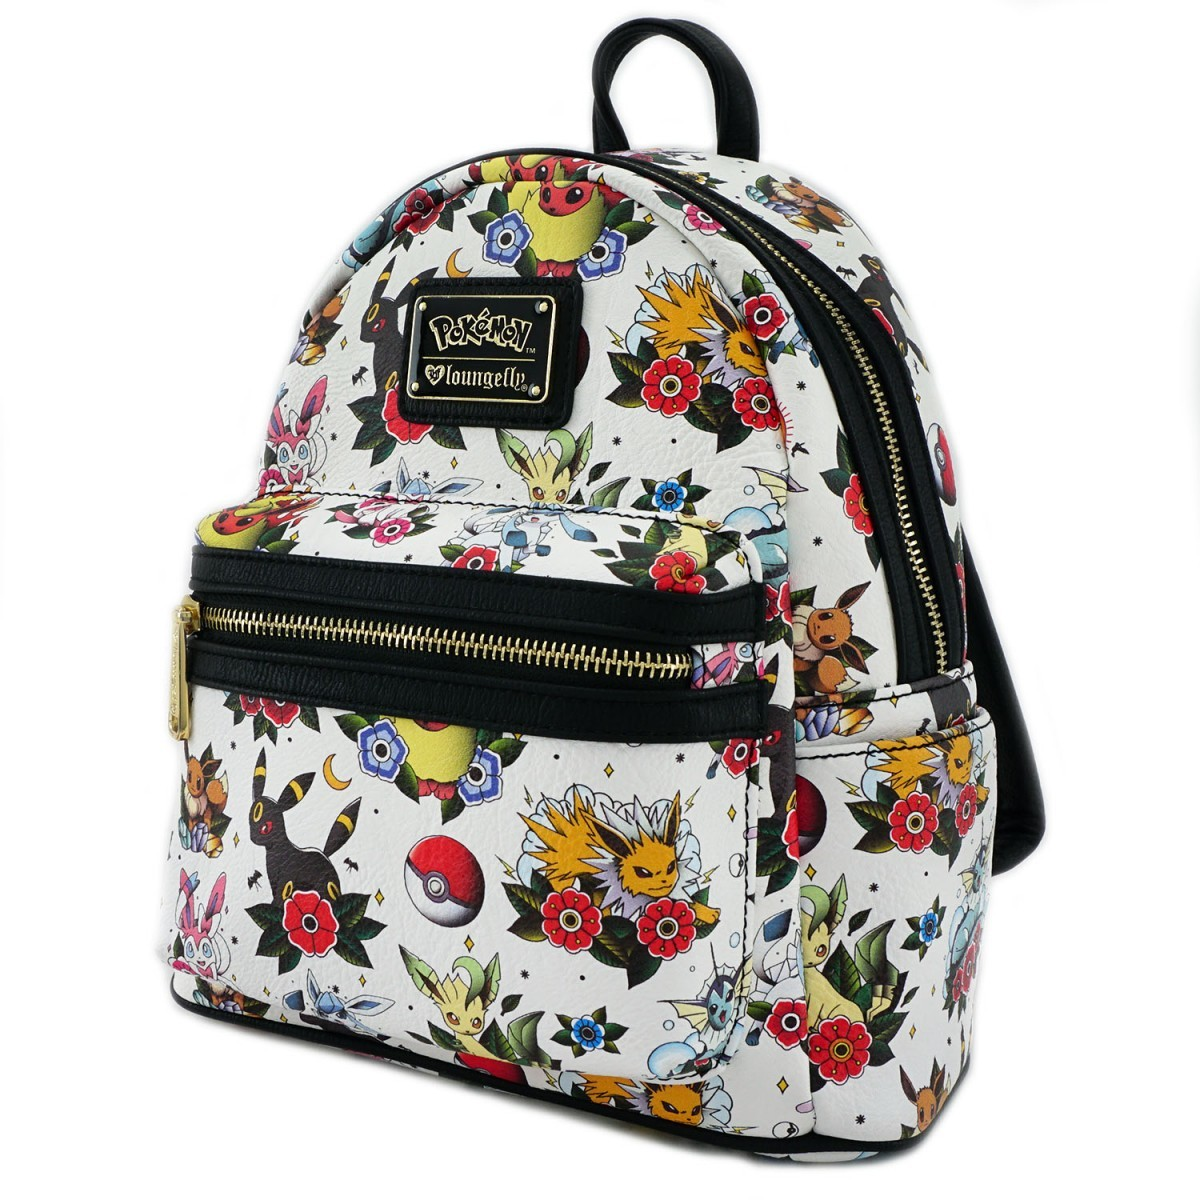 Eevee Evolutions - Tattoo Mini Backpack   Women s   at Mighty Ape ... a2a180b510